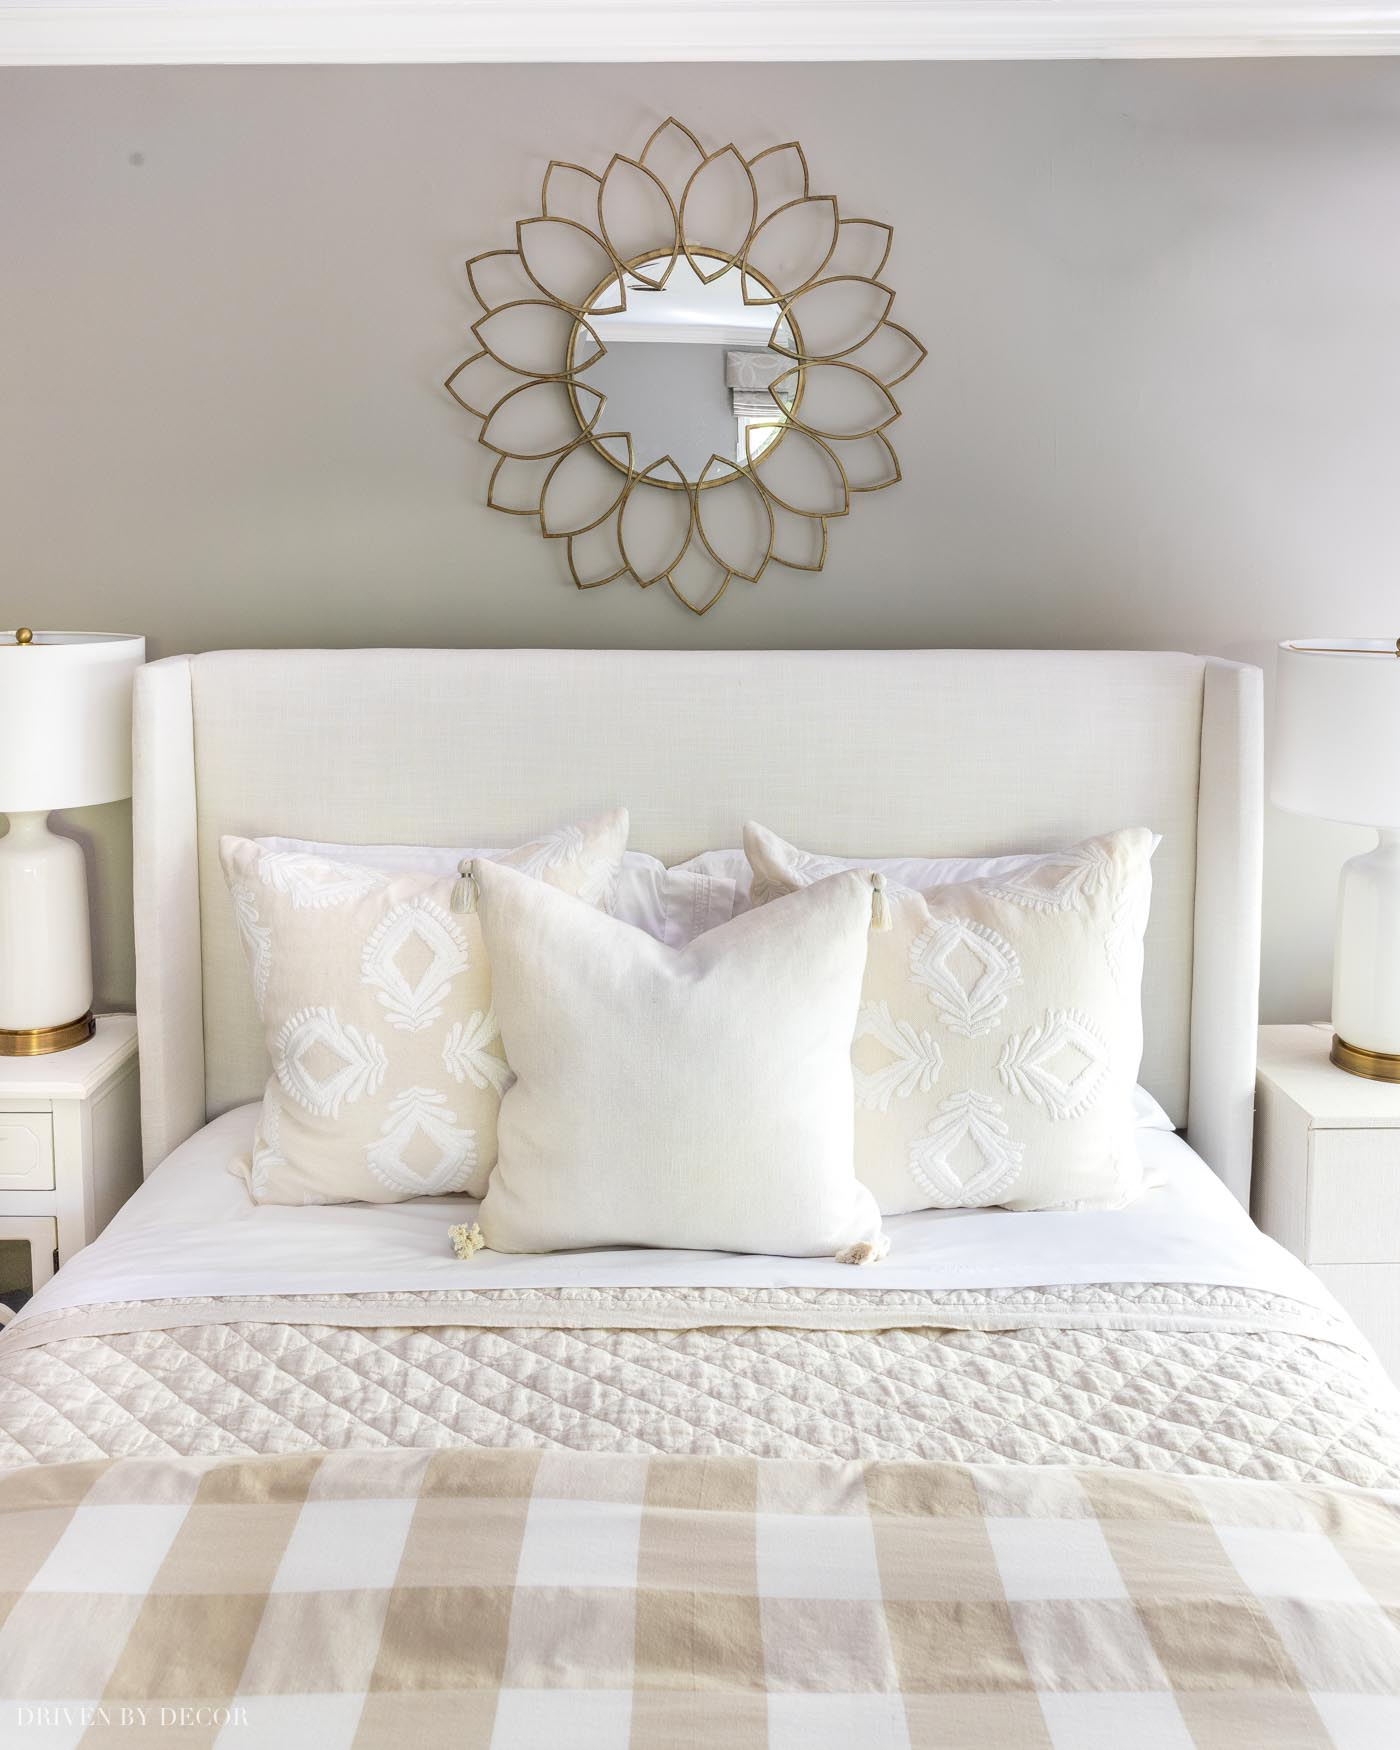 Simple arrangement of pillows on a queen bed